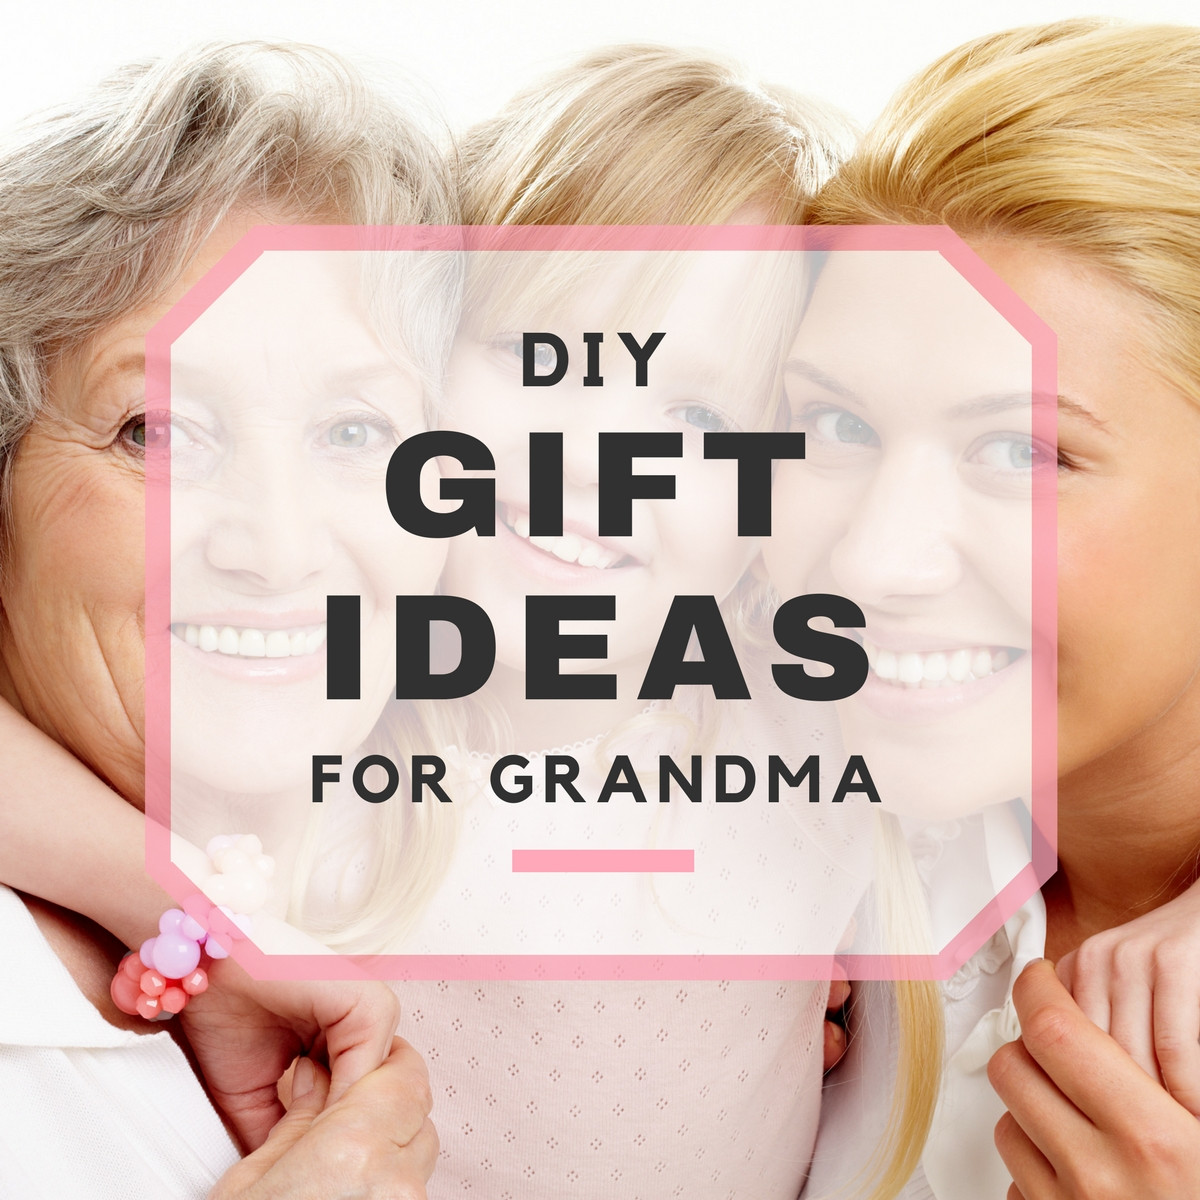 Best ideas about Gift Ideas For Grandmother . Save or Pin DIY Gift Ideas for Grandma Now.